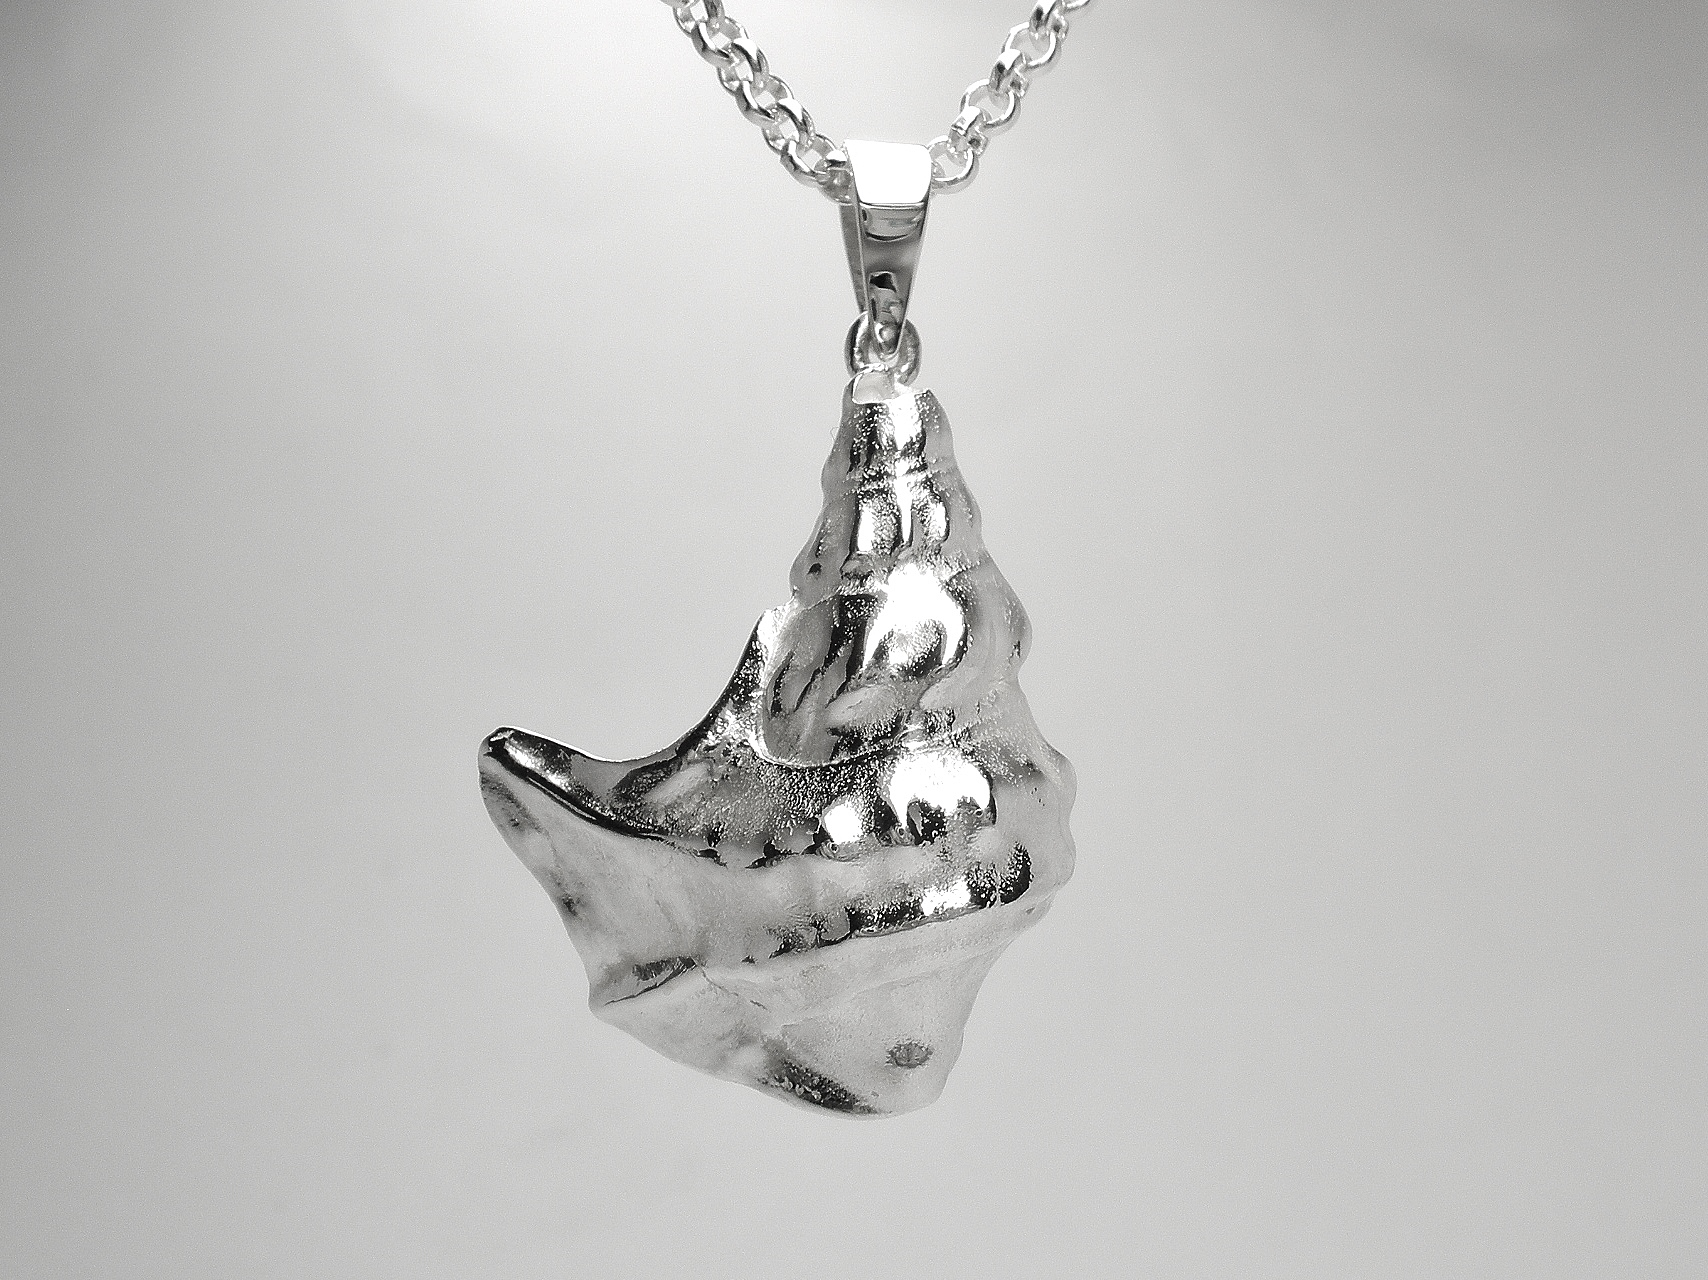 Sterling silver 'Pelican foot shell' pendant cast from a real shell.